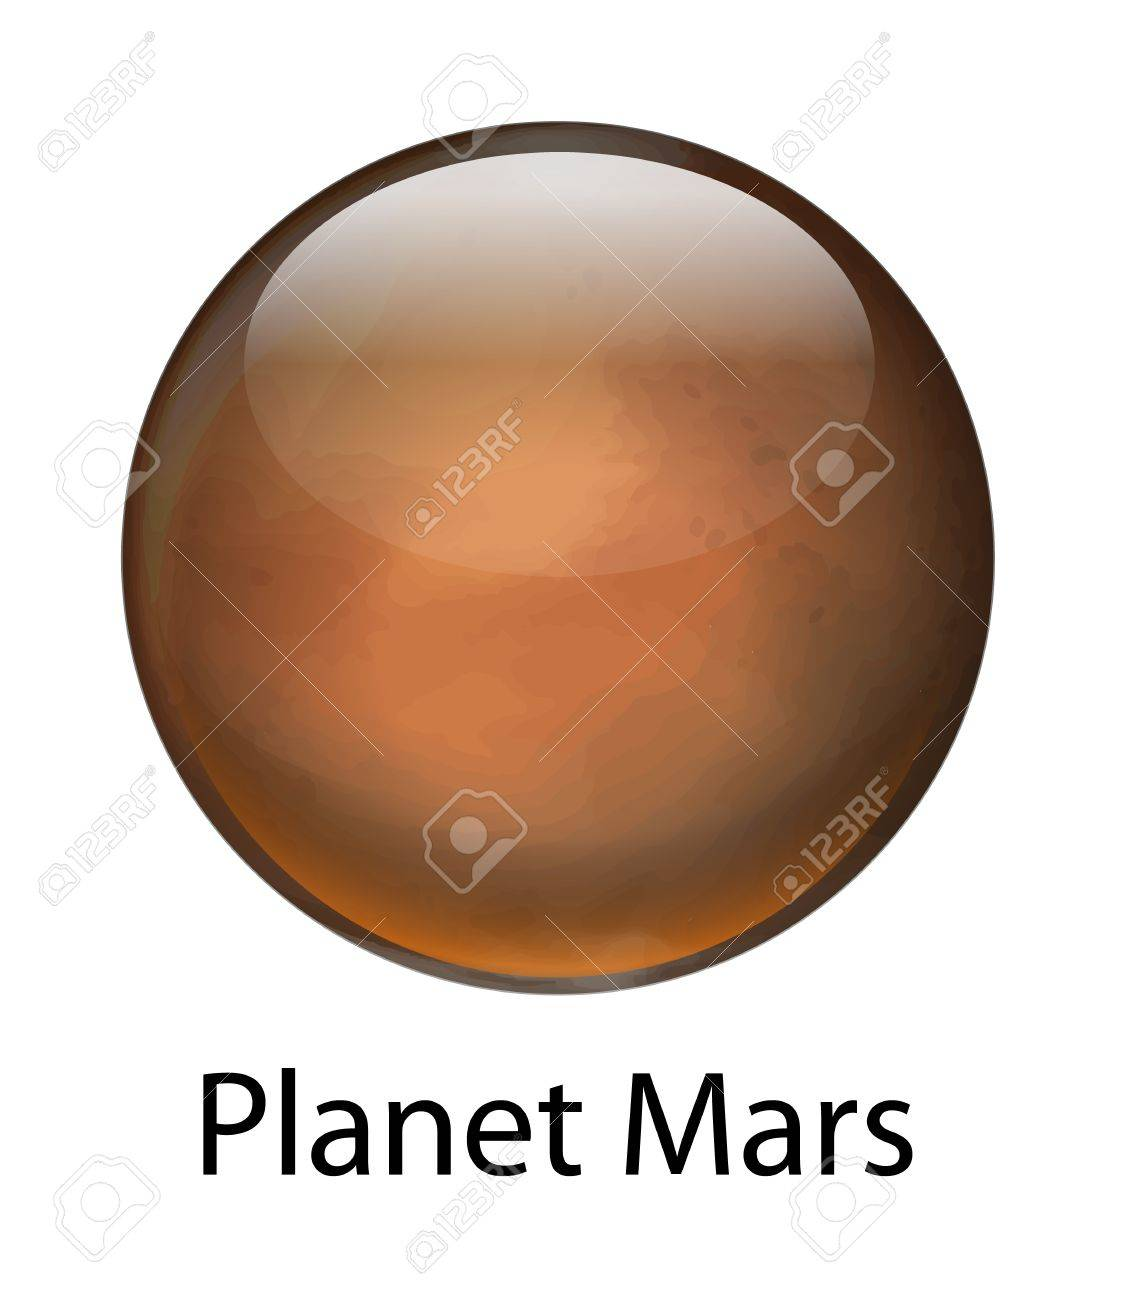 Illustration of the planet Mars Stock Vector - 16988042